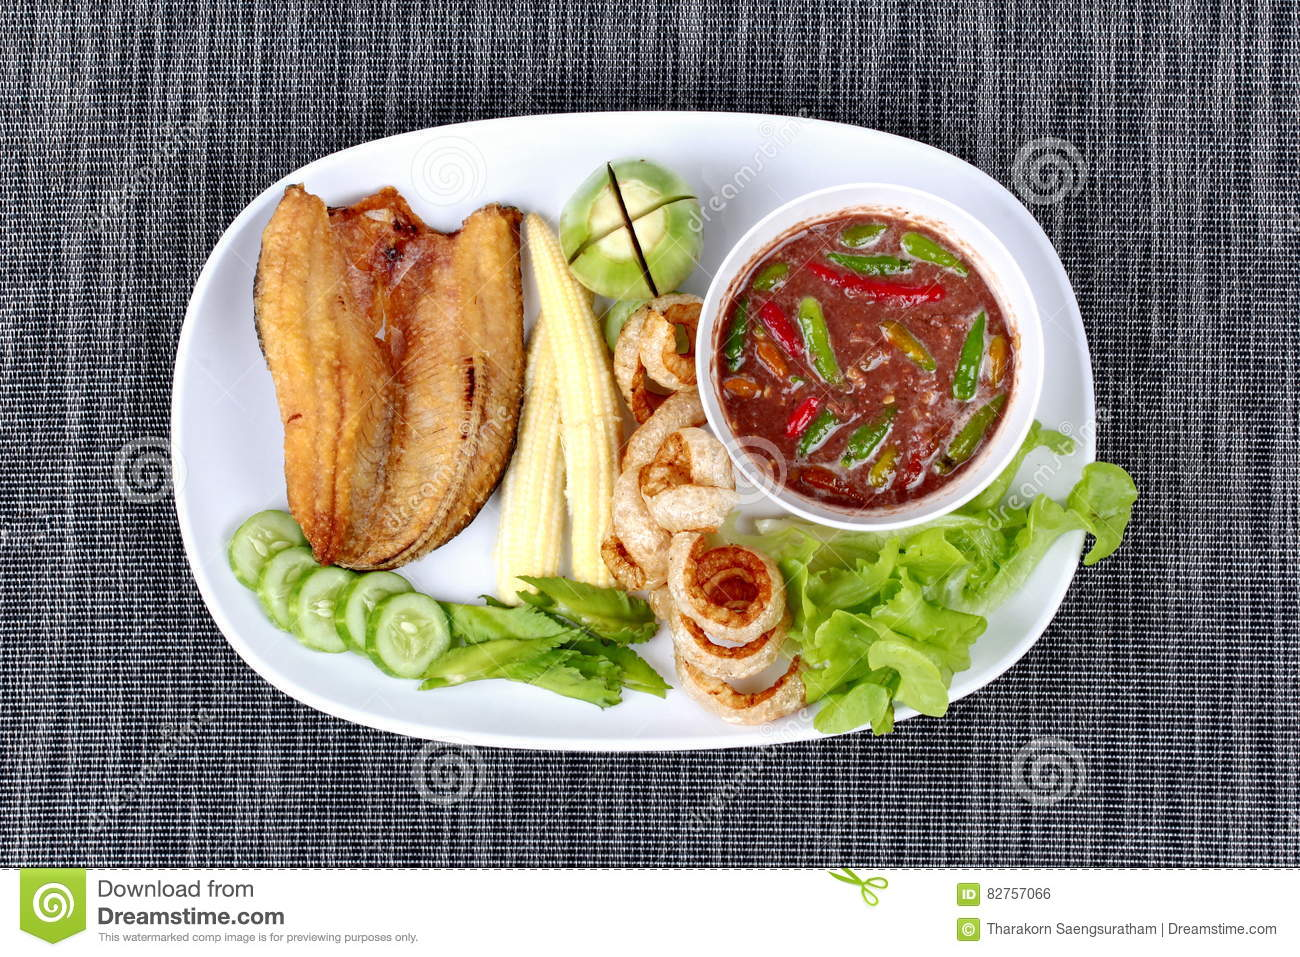 Ready served spicy shrimp paste dip as nam prik kapi for Pork rind fishing